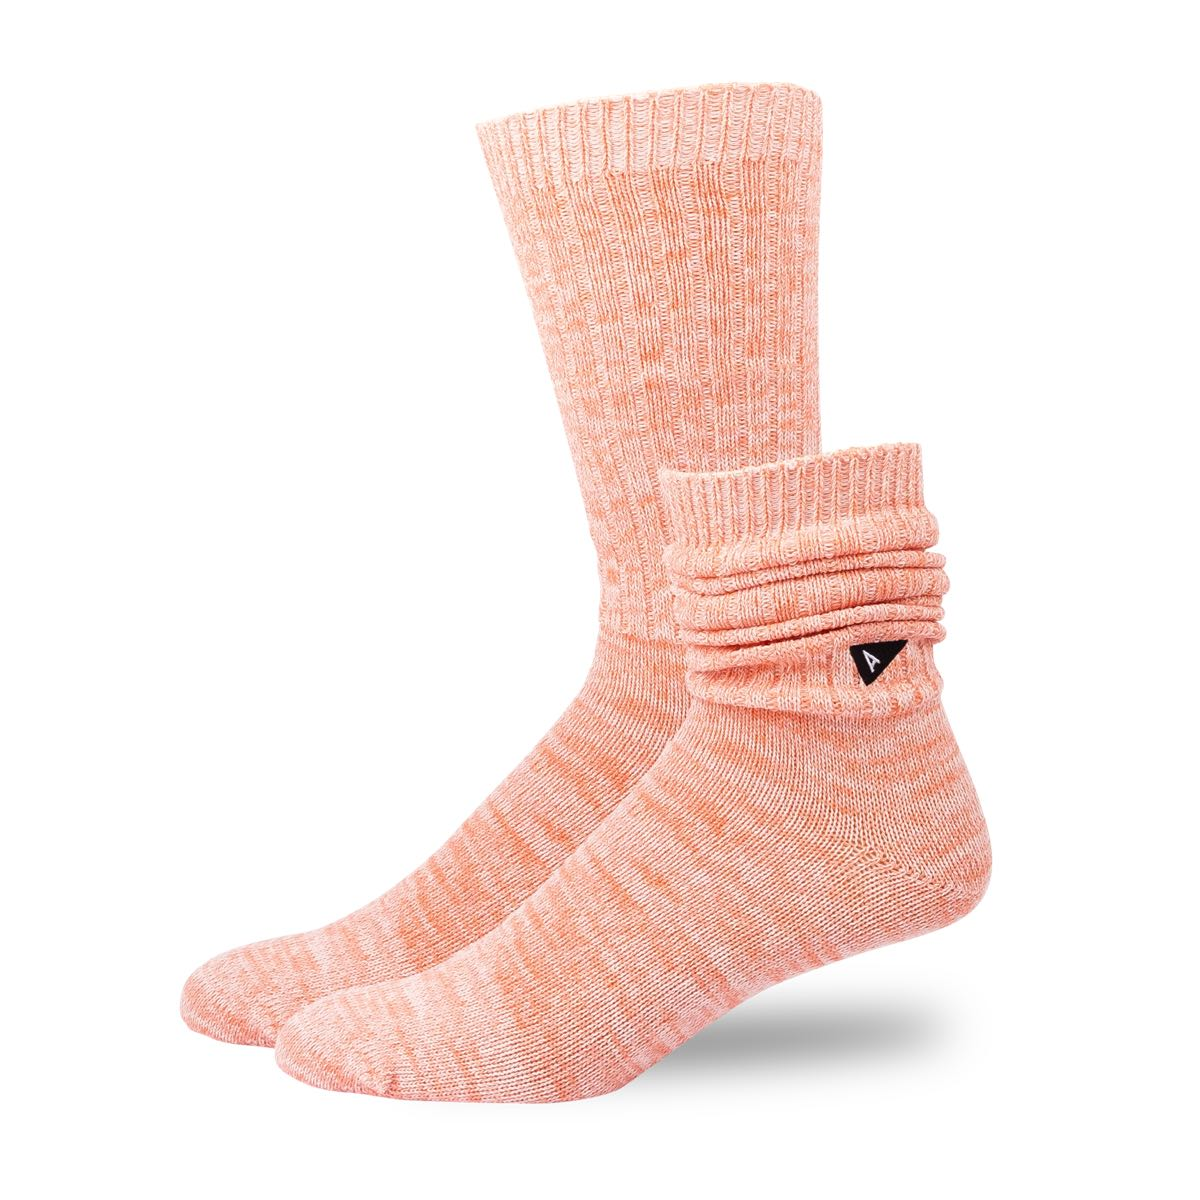 Arvin Goods Casual Twisted Socks - Coral image 2